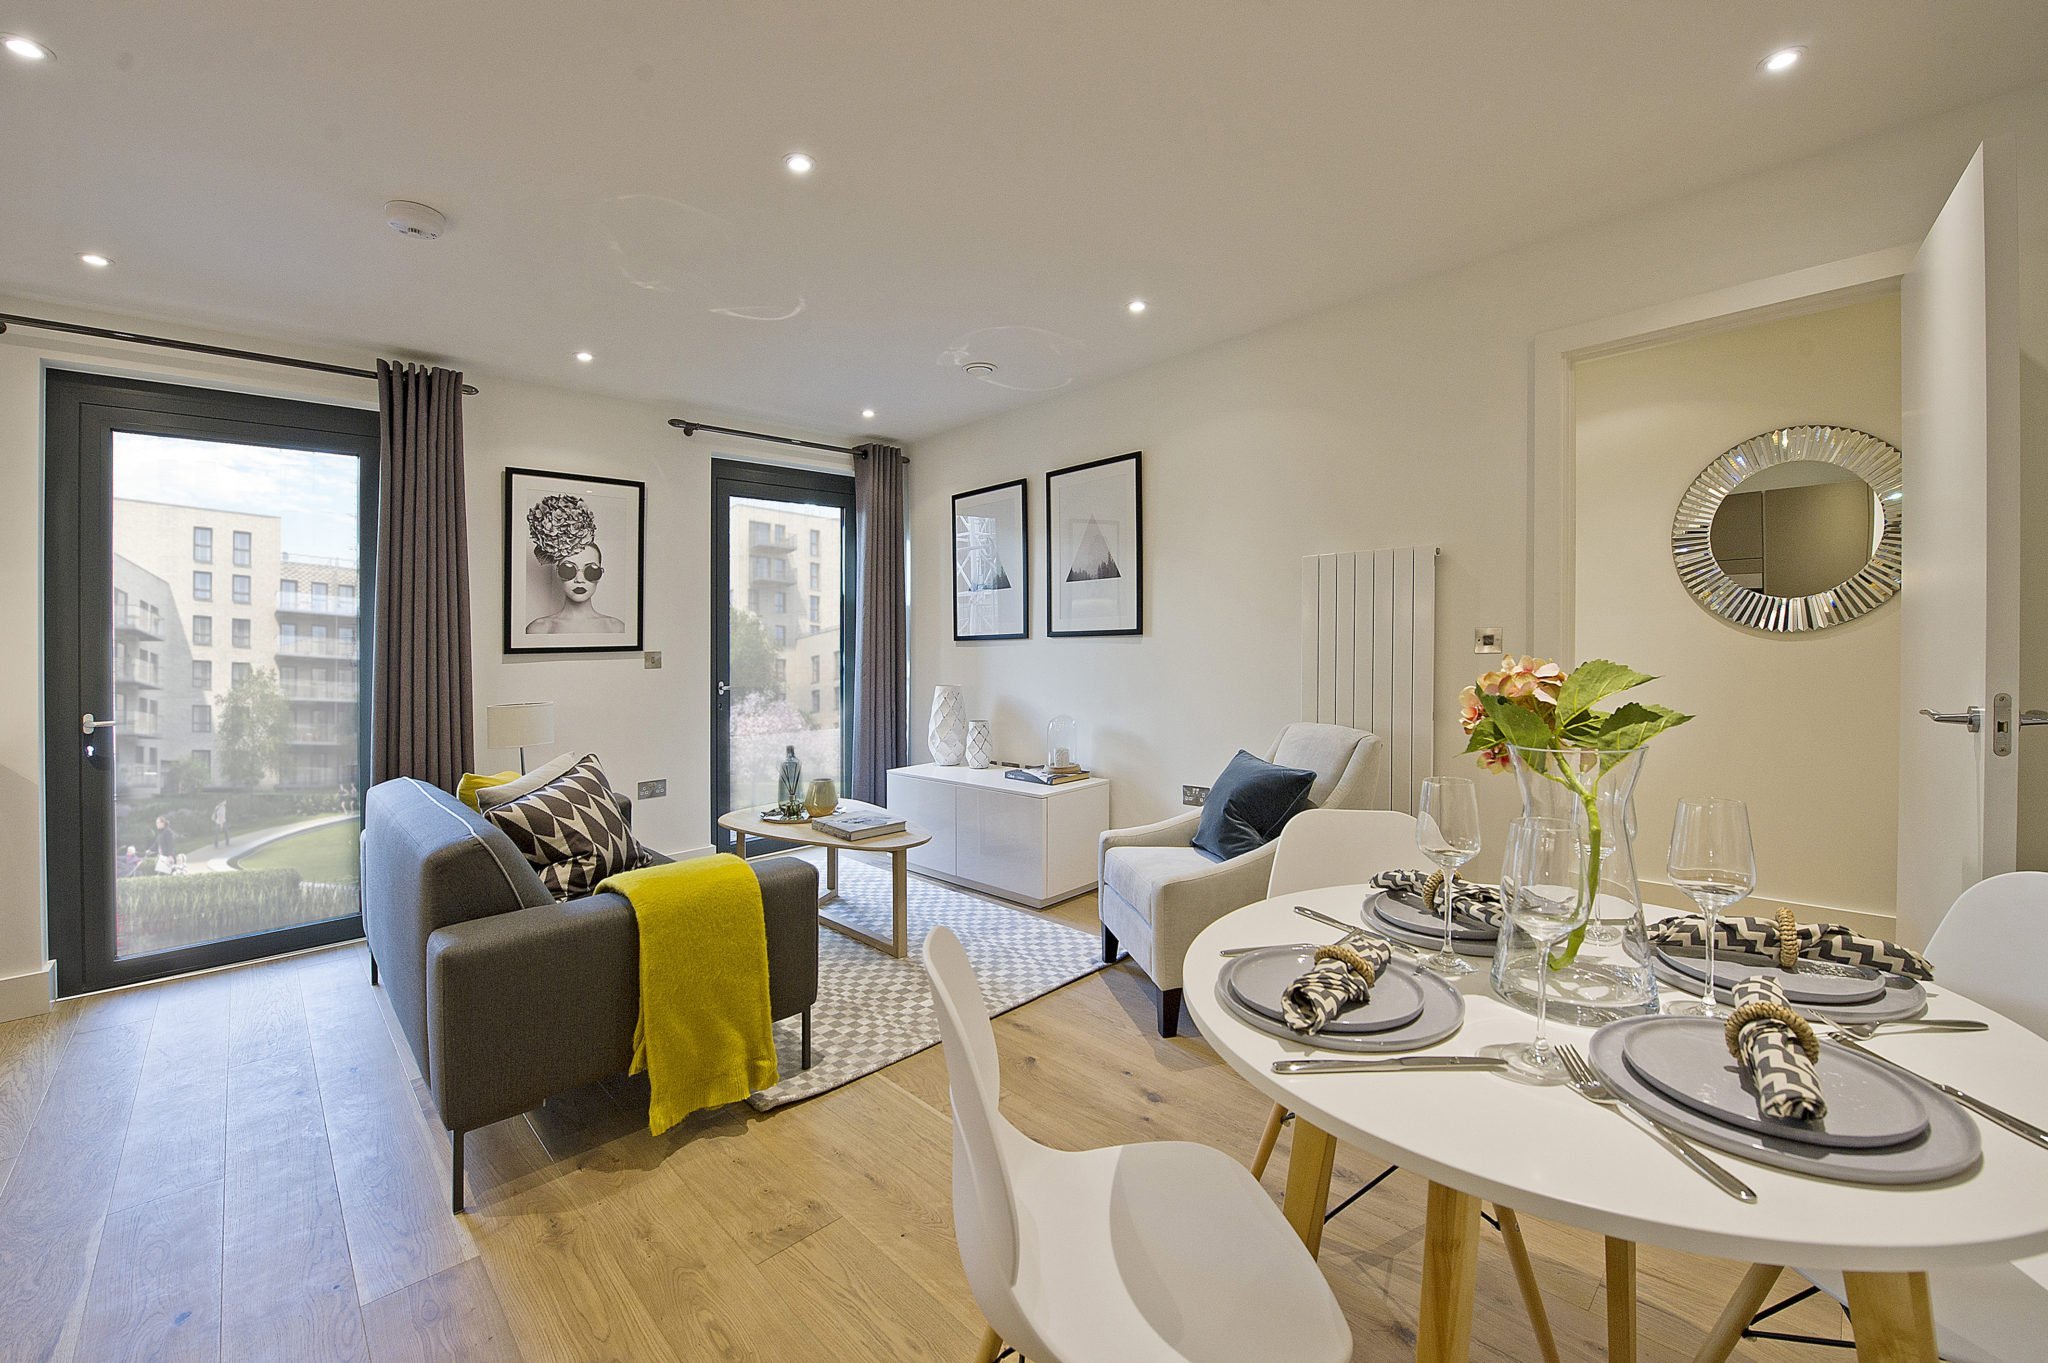 Looking-for-affordable-apartments-in-Wembley?-why-not-book-Exhibition-Way,-our-Wembley-Serviced-Apartments.-Book-today-for-great-rates.